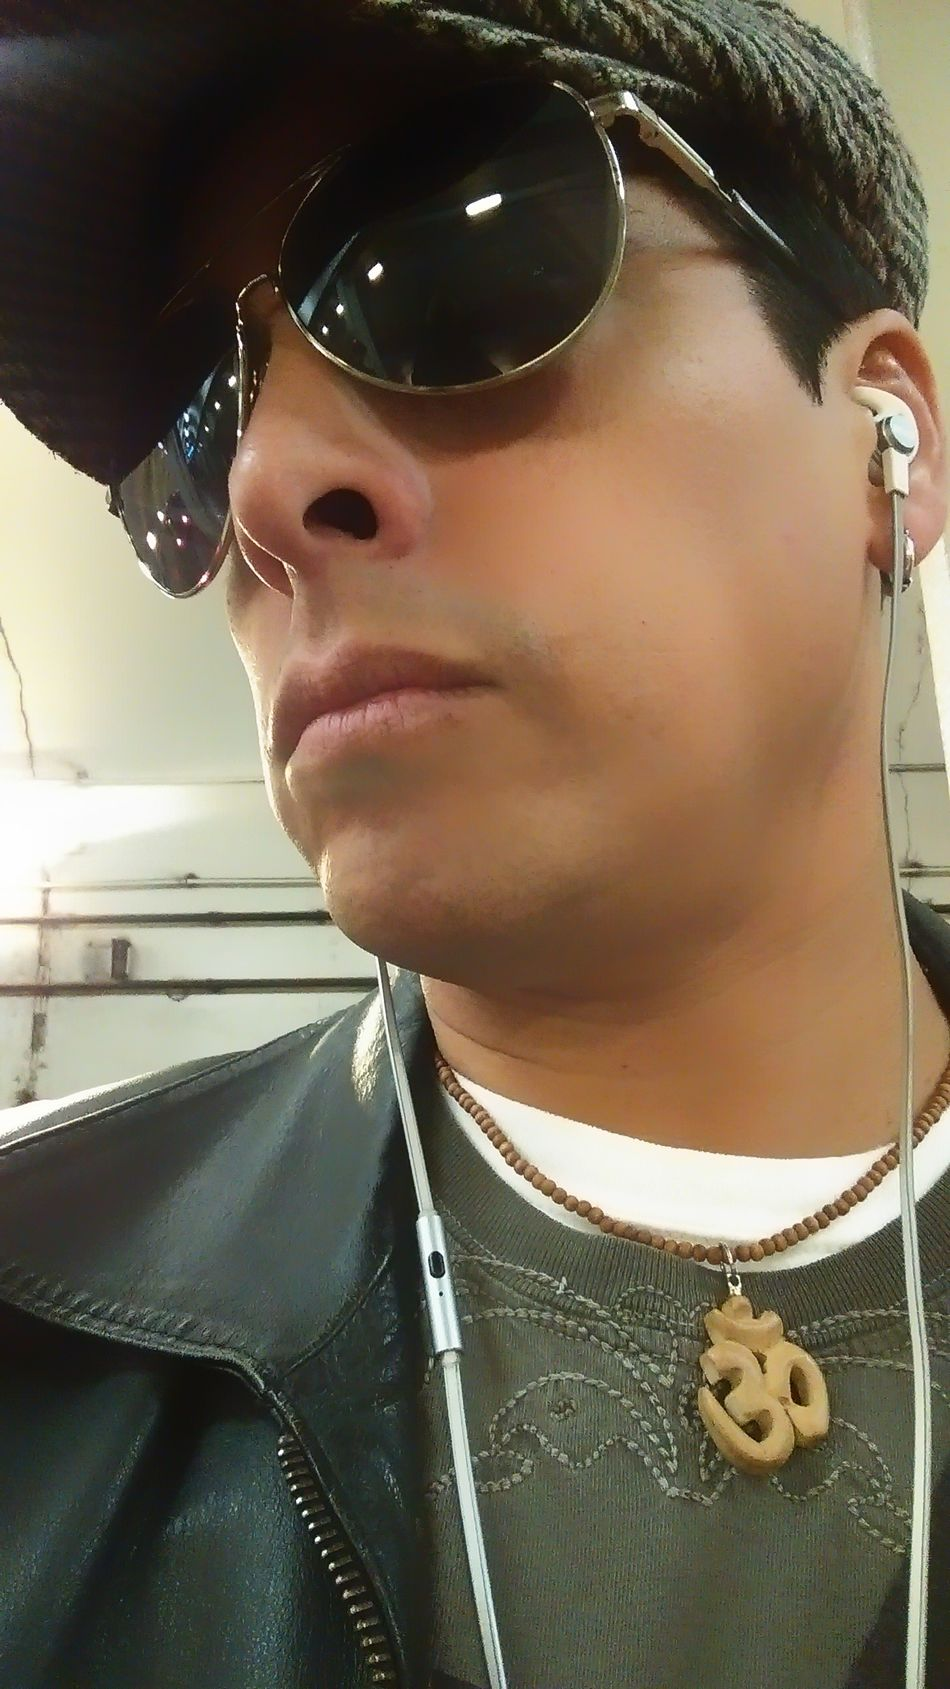 Serious Day Close-up Headshot Person Selfie Portrait Selfie Time! On My Way To Work Waiting For A Train Aviators Ivy Cap Trying To Look Cool Listening To Music